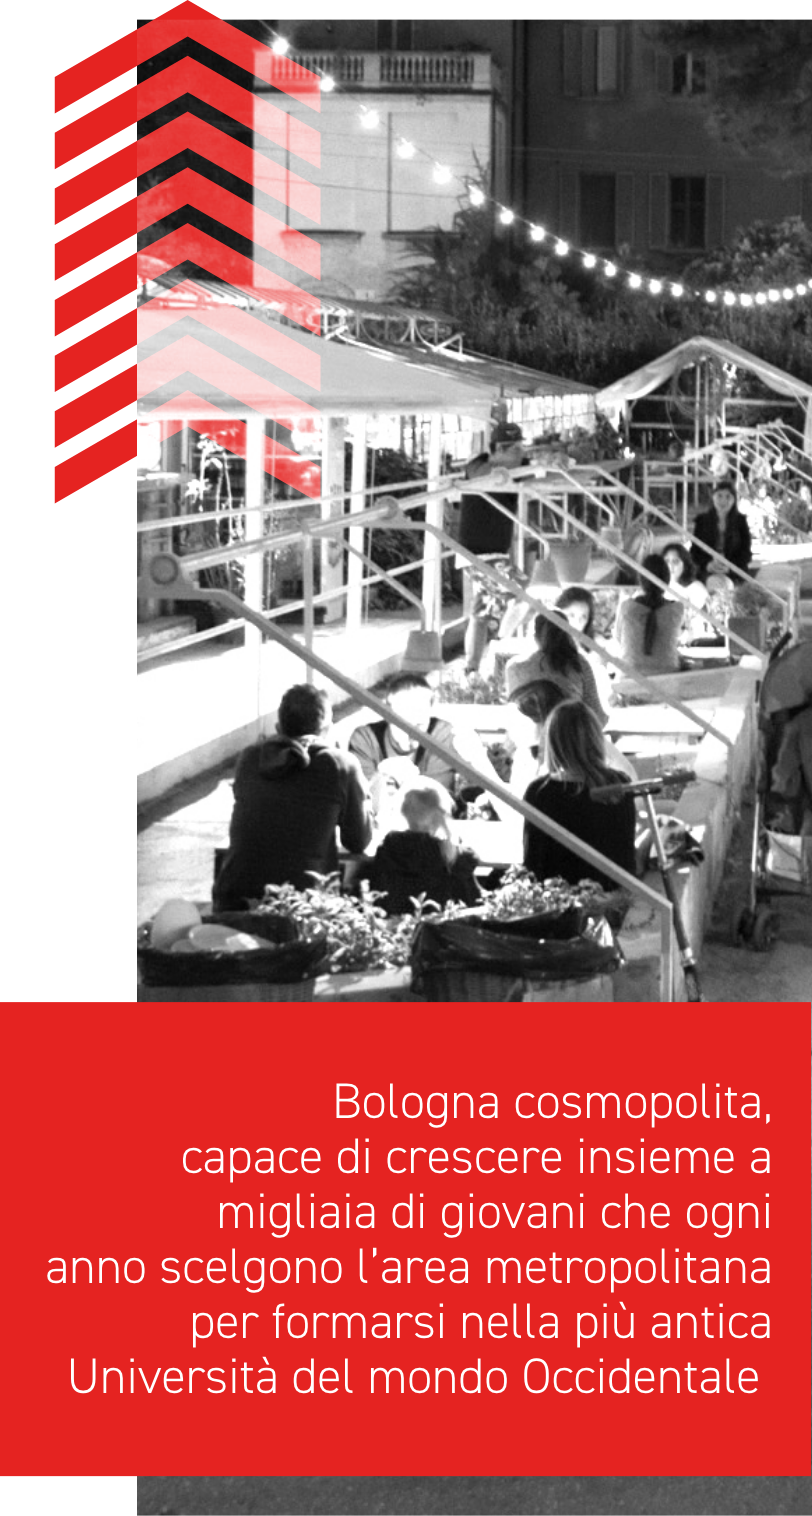 A cosmopolitan city, able to accomodate and grow along with the thousands of young people that year after year choose the metropolitan area of Bologna for its University